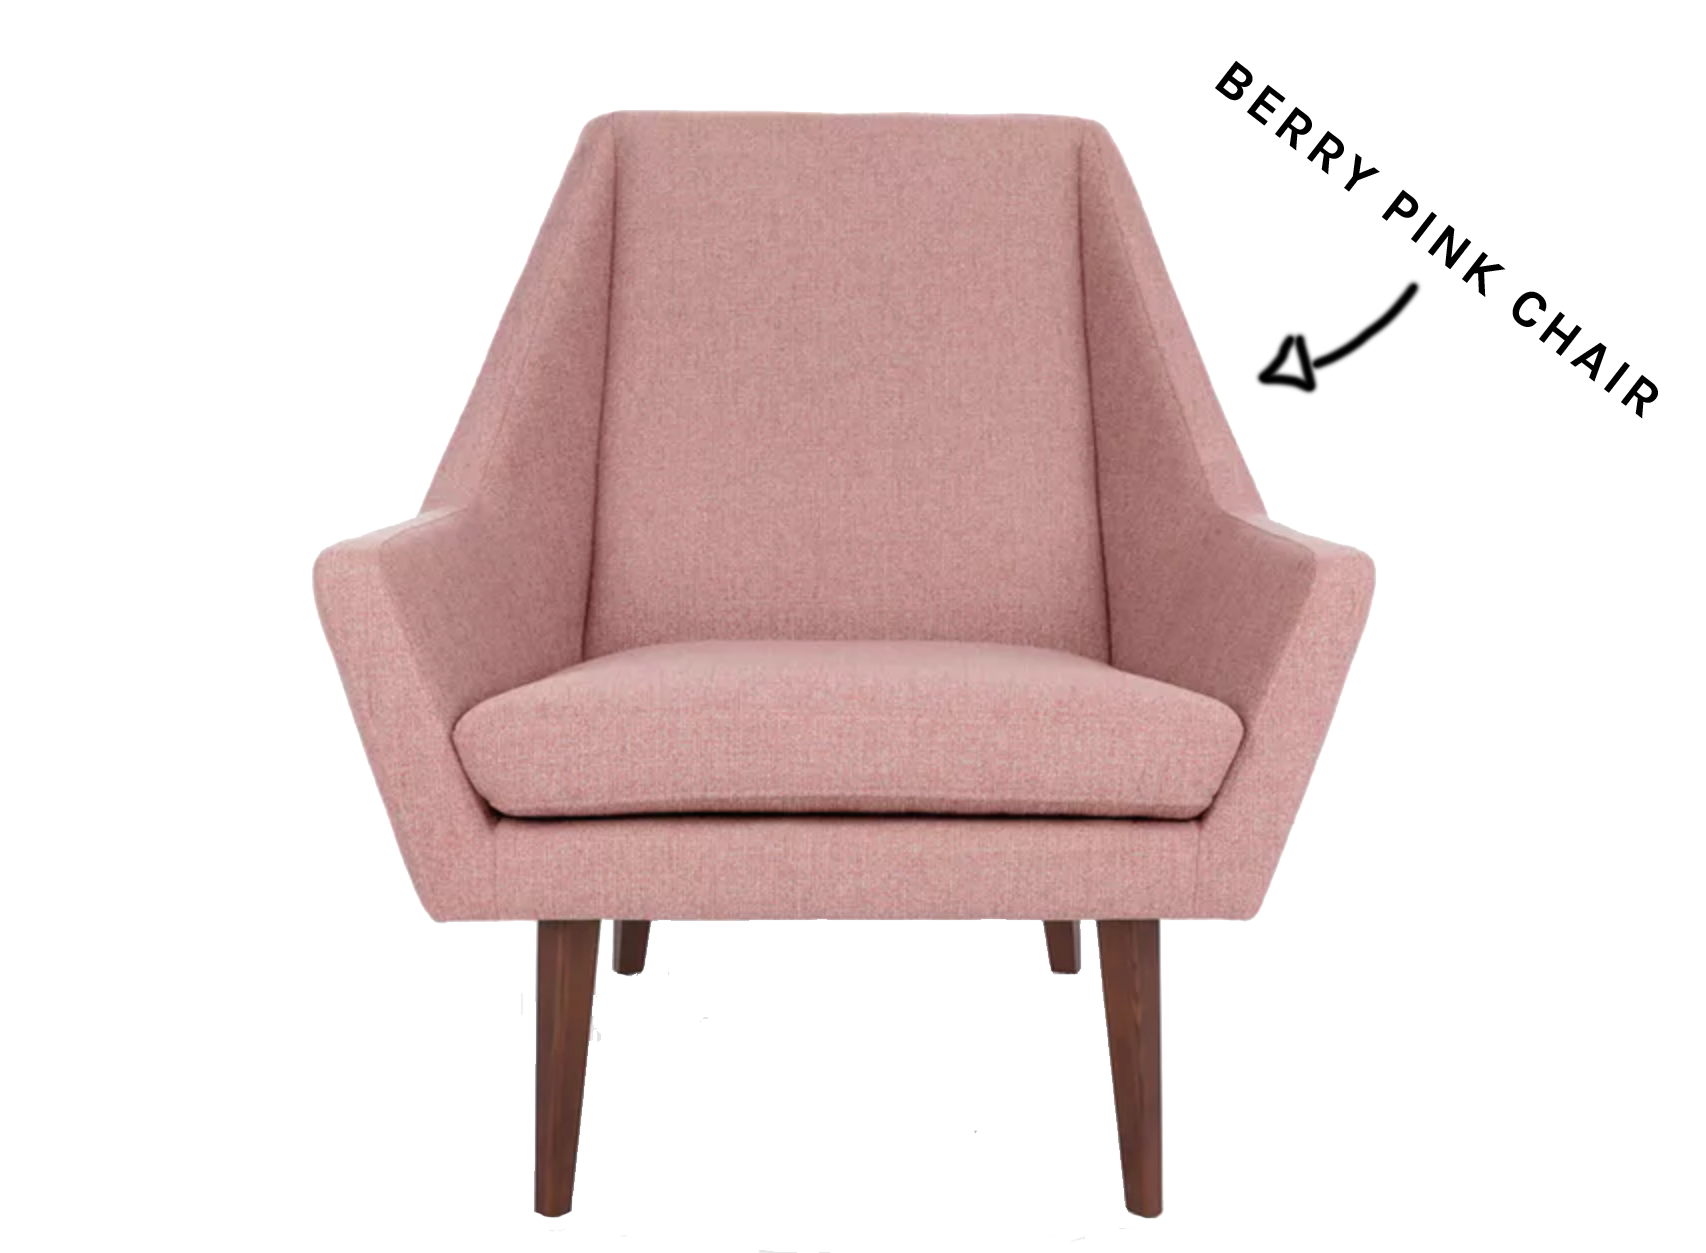 berry-chair.png